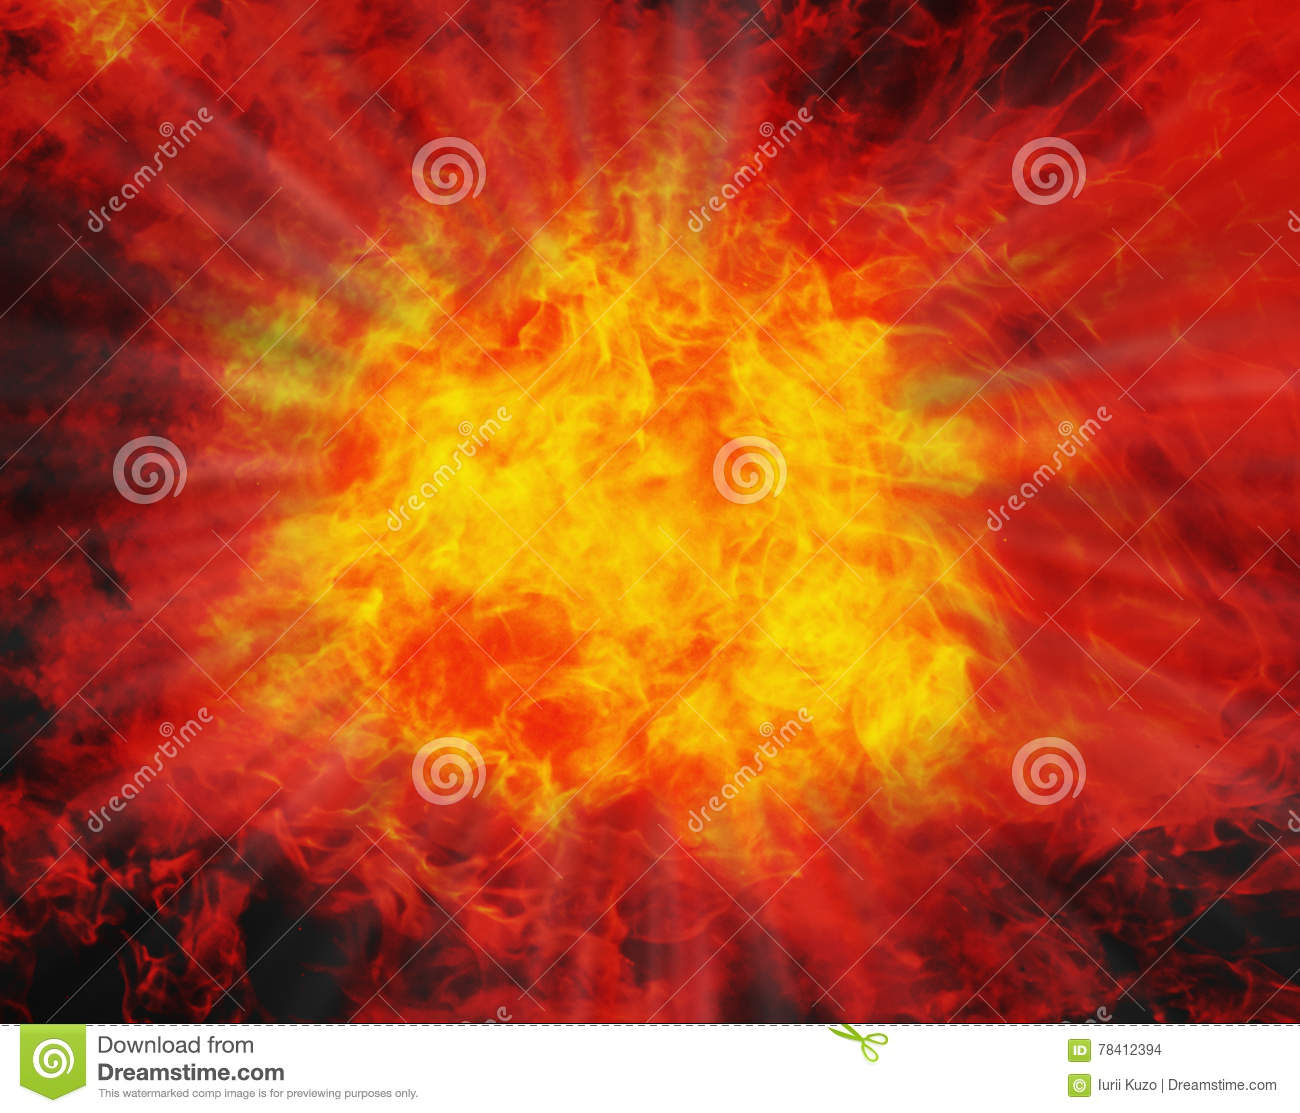 Background of fire. Explosion. Strength, danger, power, energy